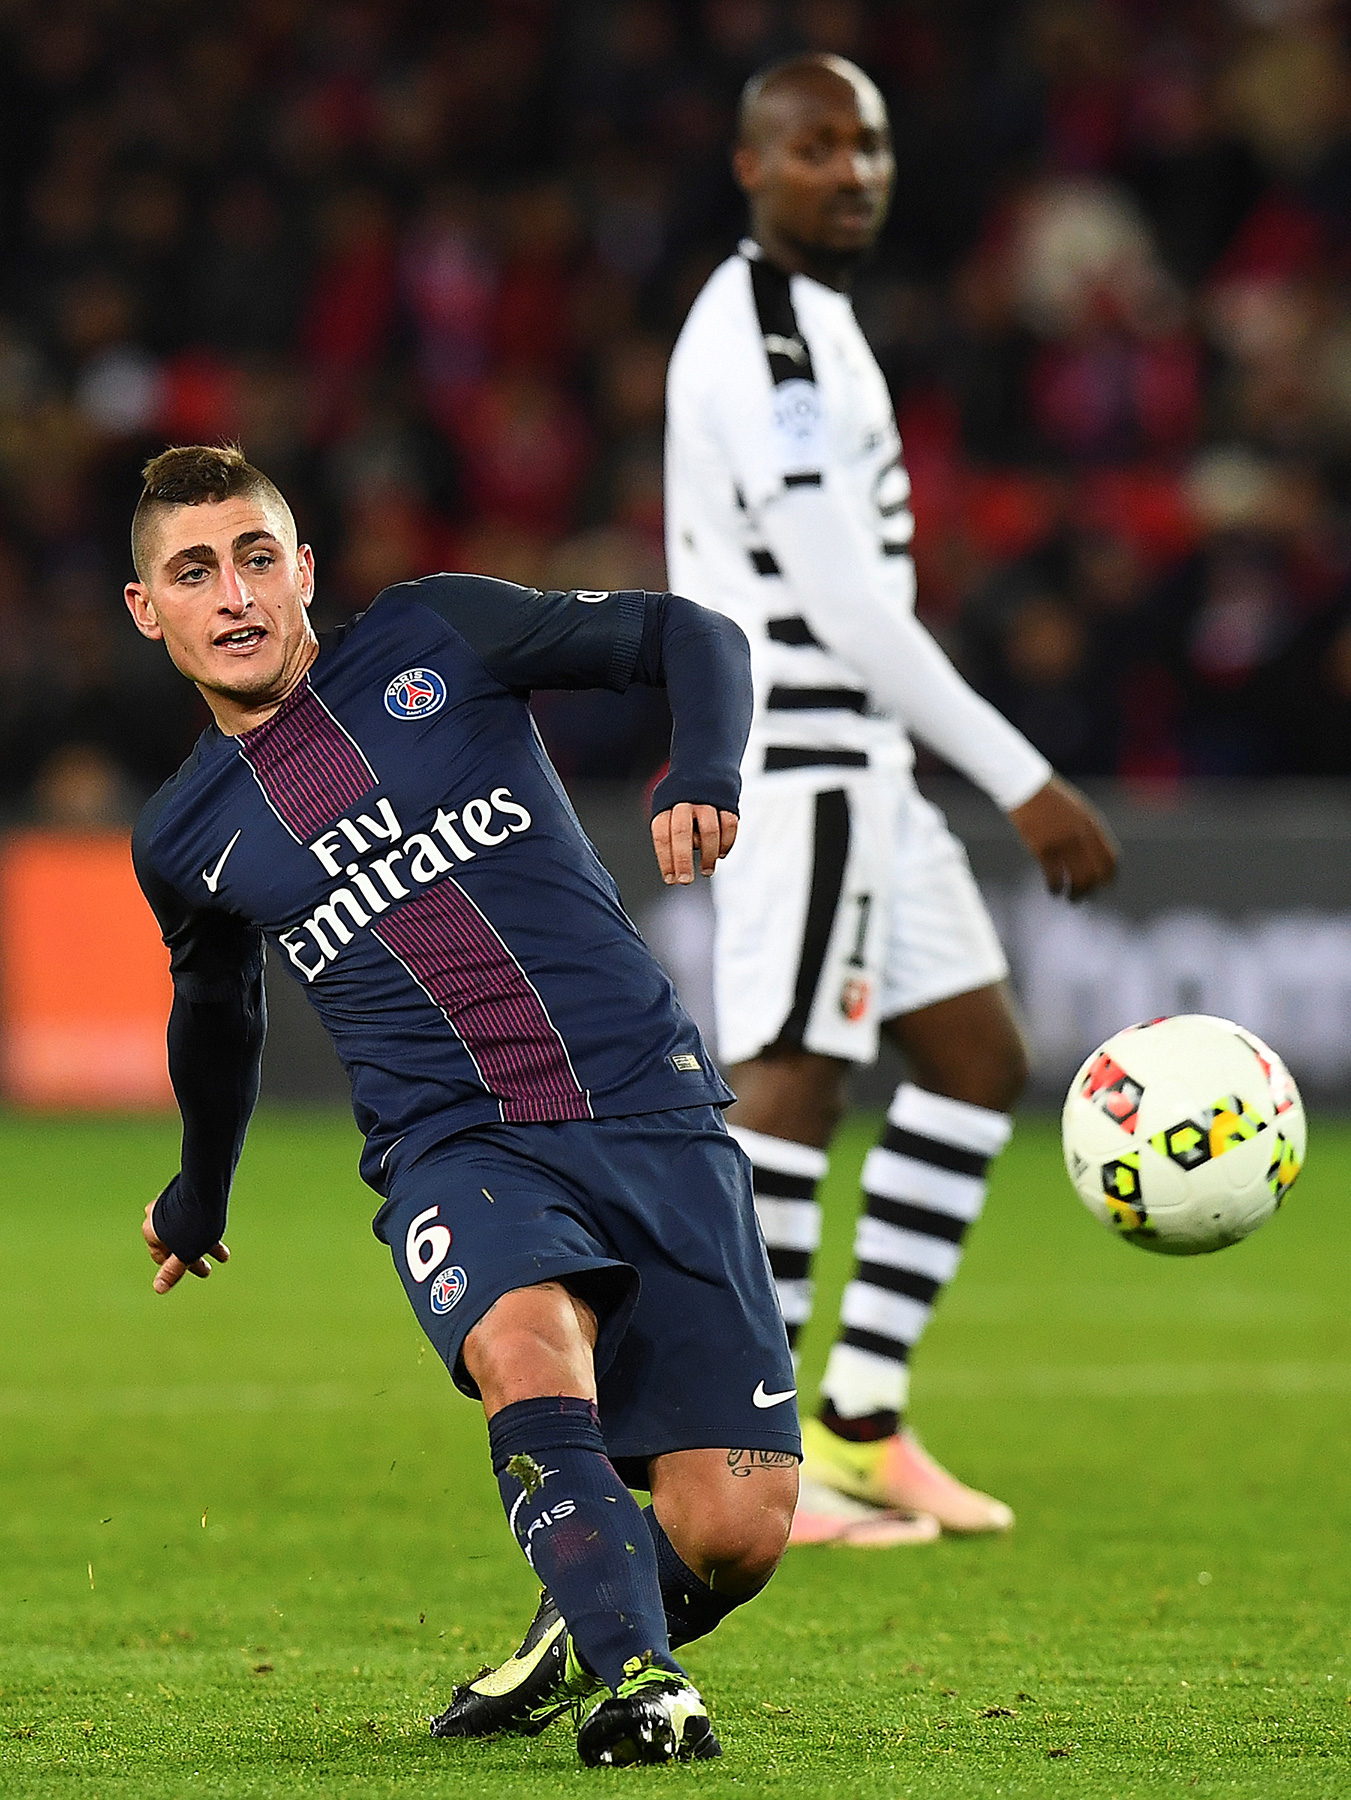 Match in Photos: PSG's Dominating Win Over Rennes - PSG Talk